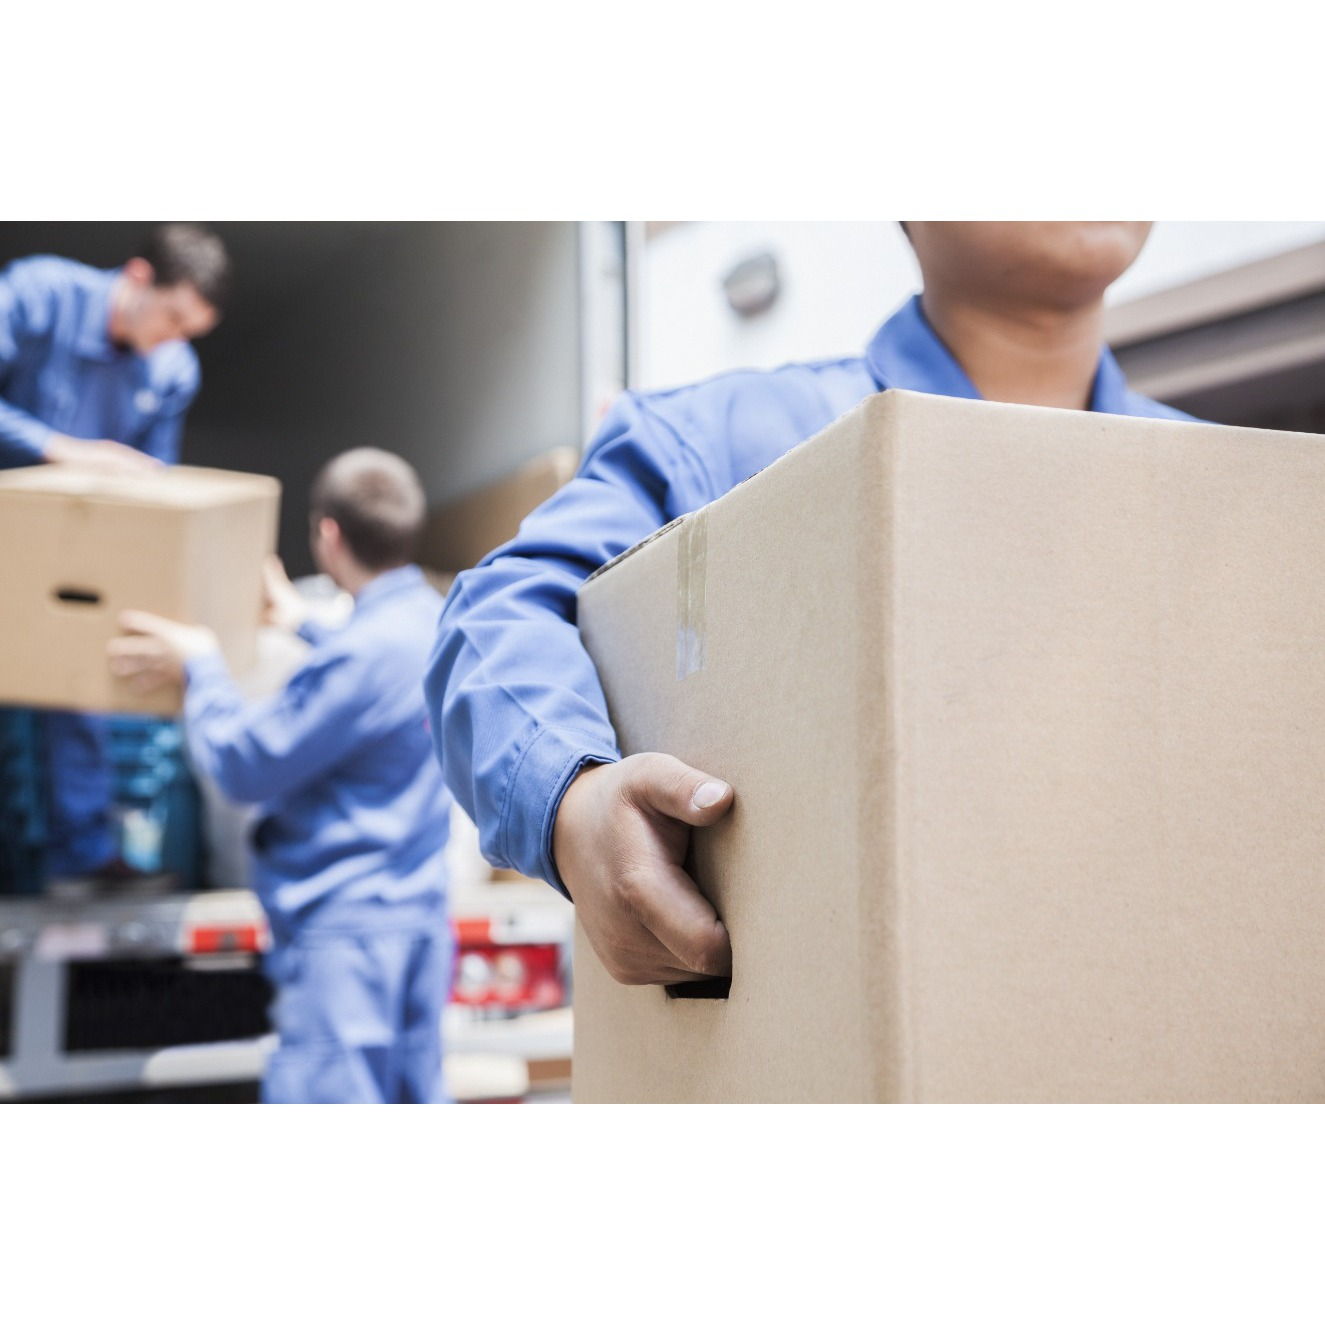 All Around Professional Affordable Movers - Memphis, TN 38119 - (901)513-9856 | ShowMeLocal.com